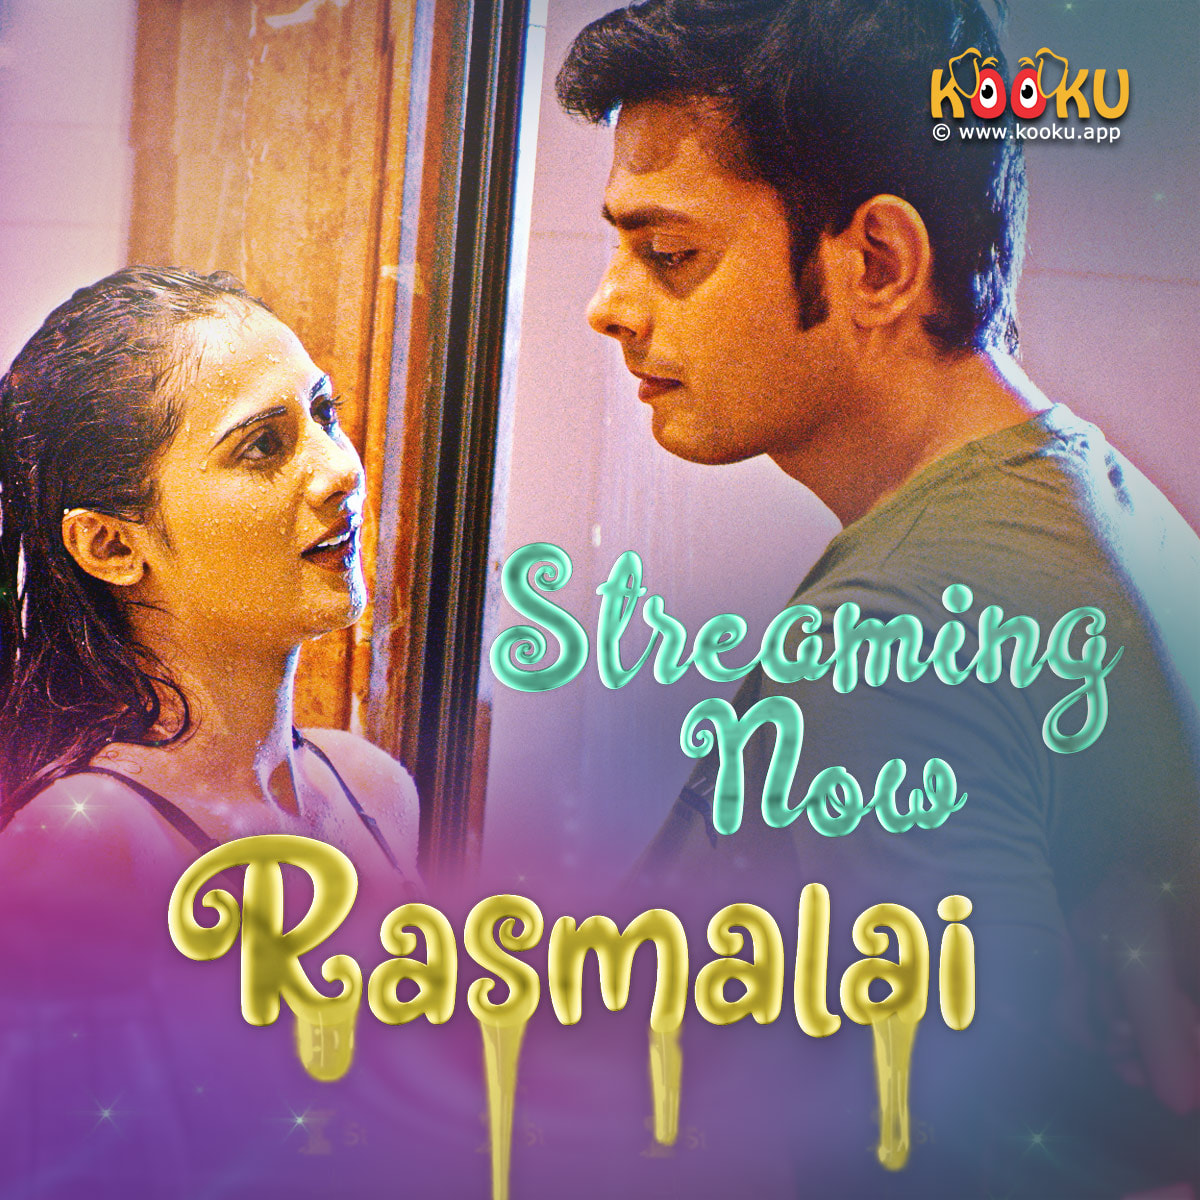 18+ Rasmalai 2021 S01 Hindi Kooku App Original Complete Web Series 720p HDRip 650MB Download